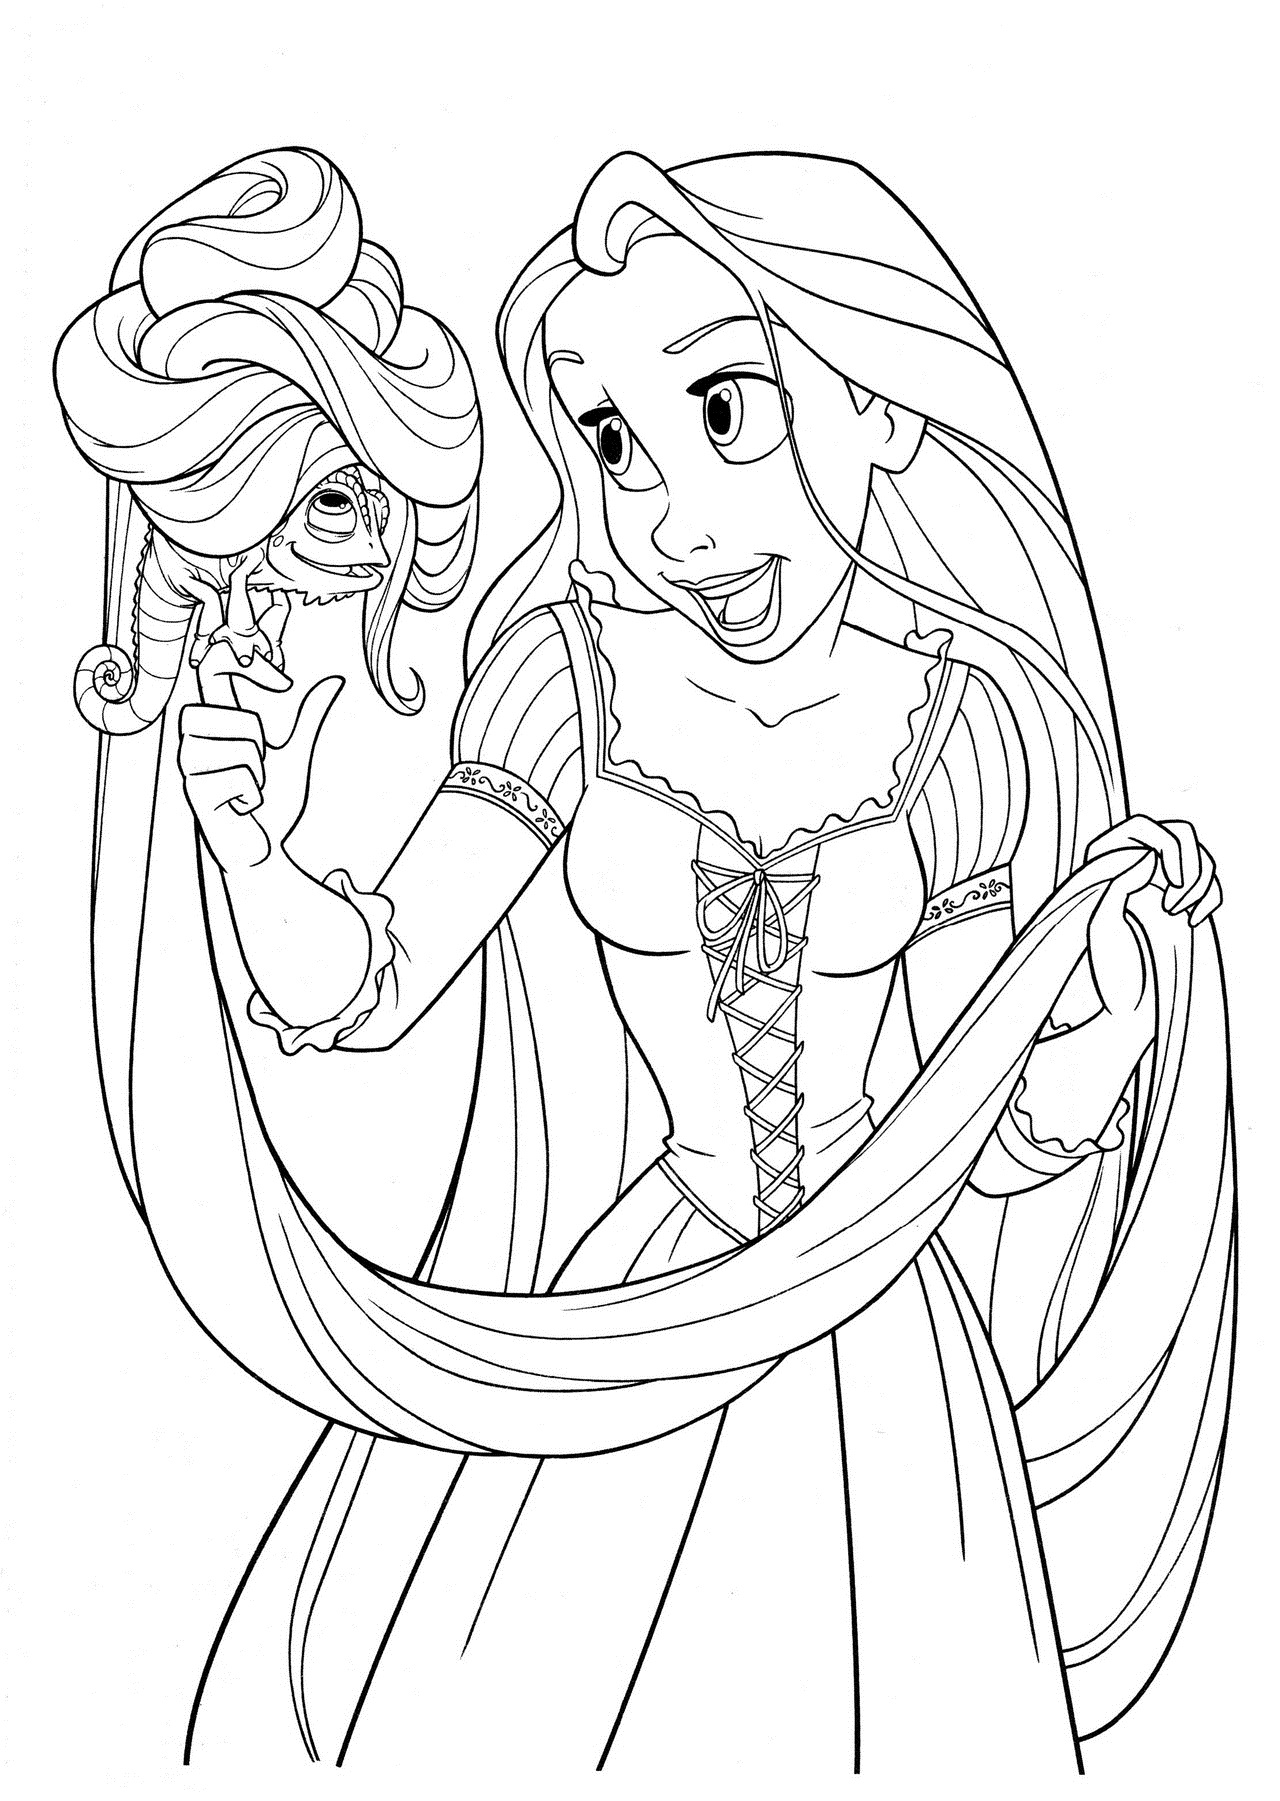 tangled coloring pages disney - photo#4